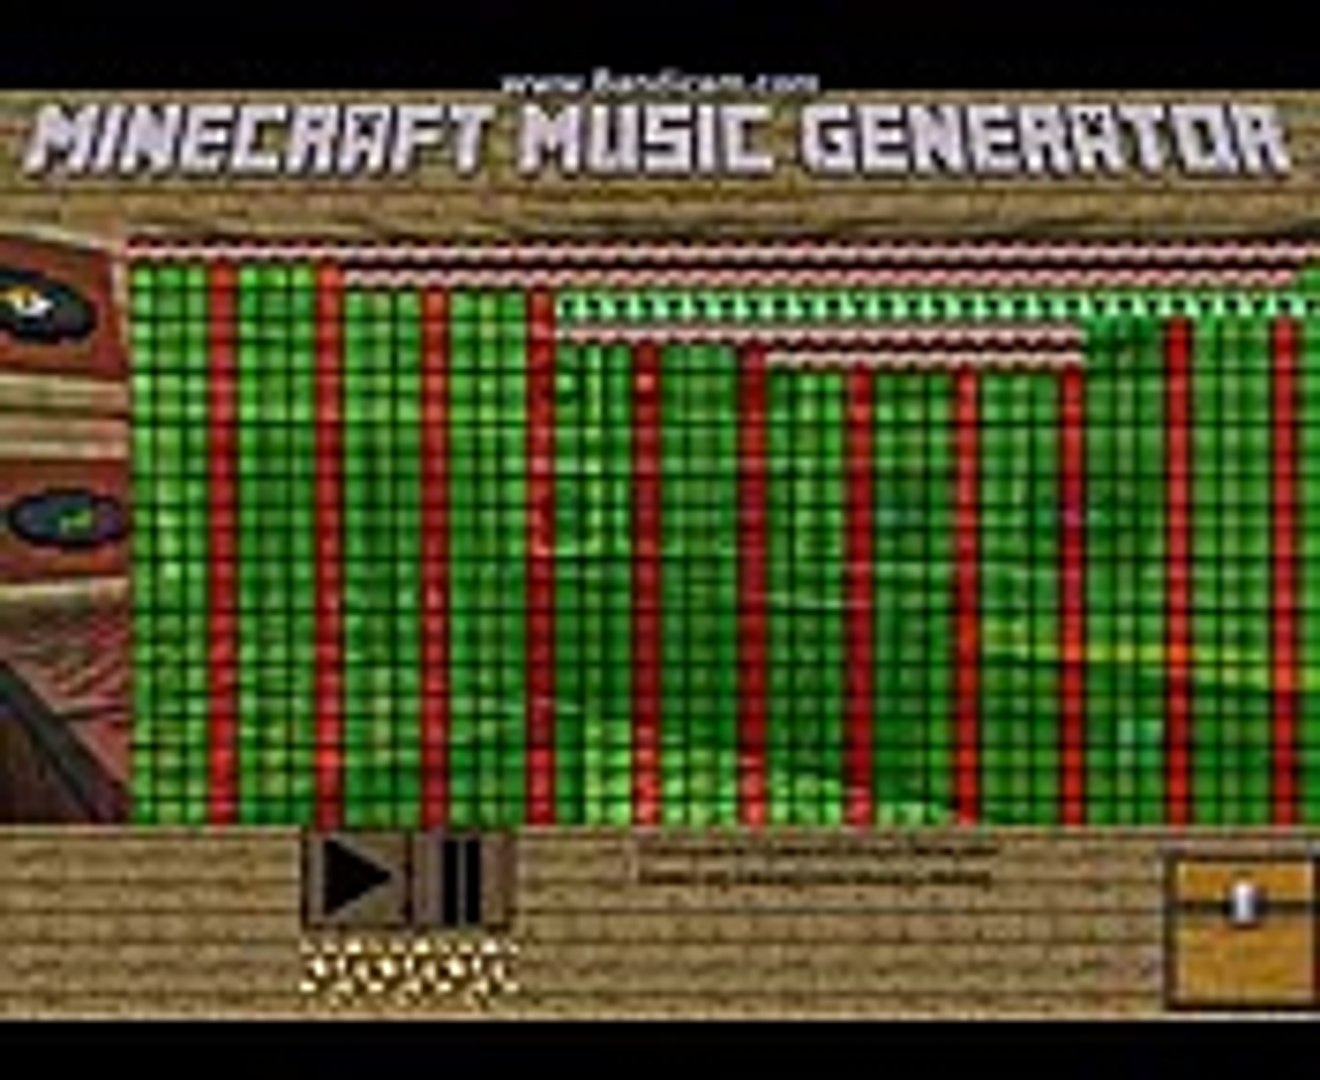 Minecraft Music Generator: Darude Sandstorm Demo Song (Coming soon)